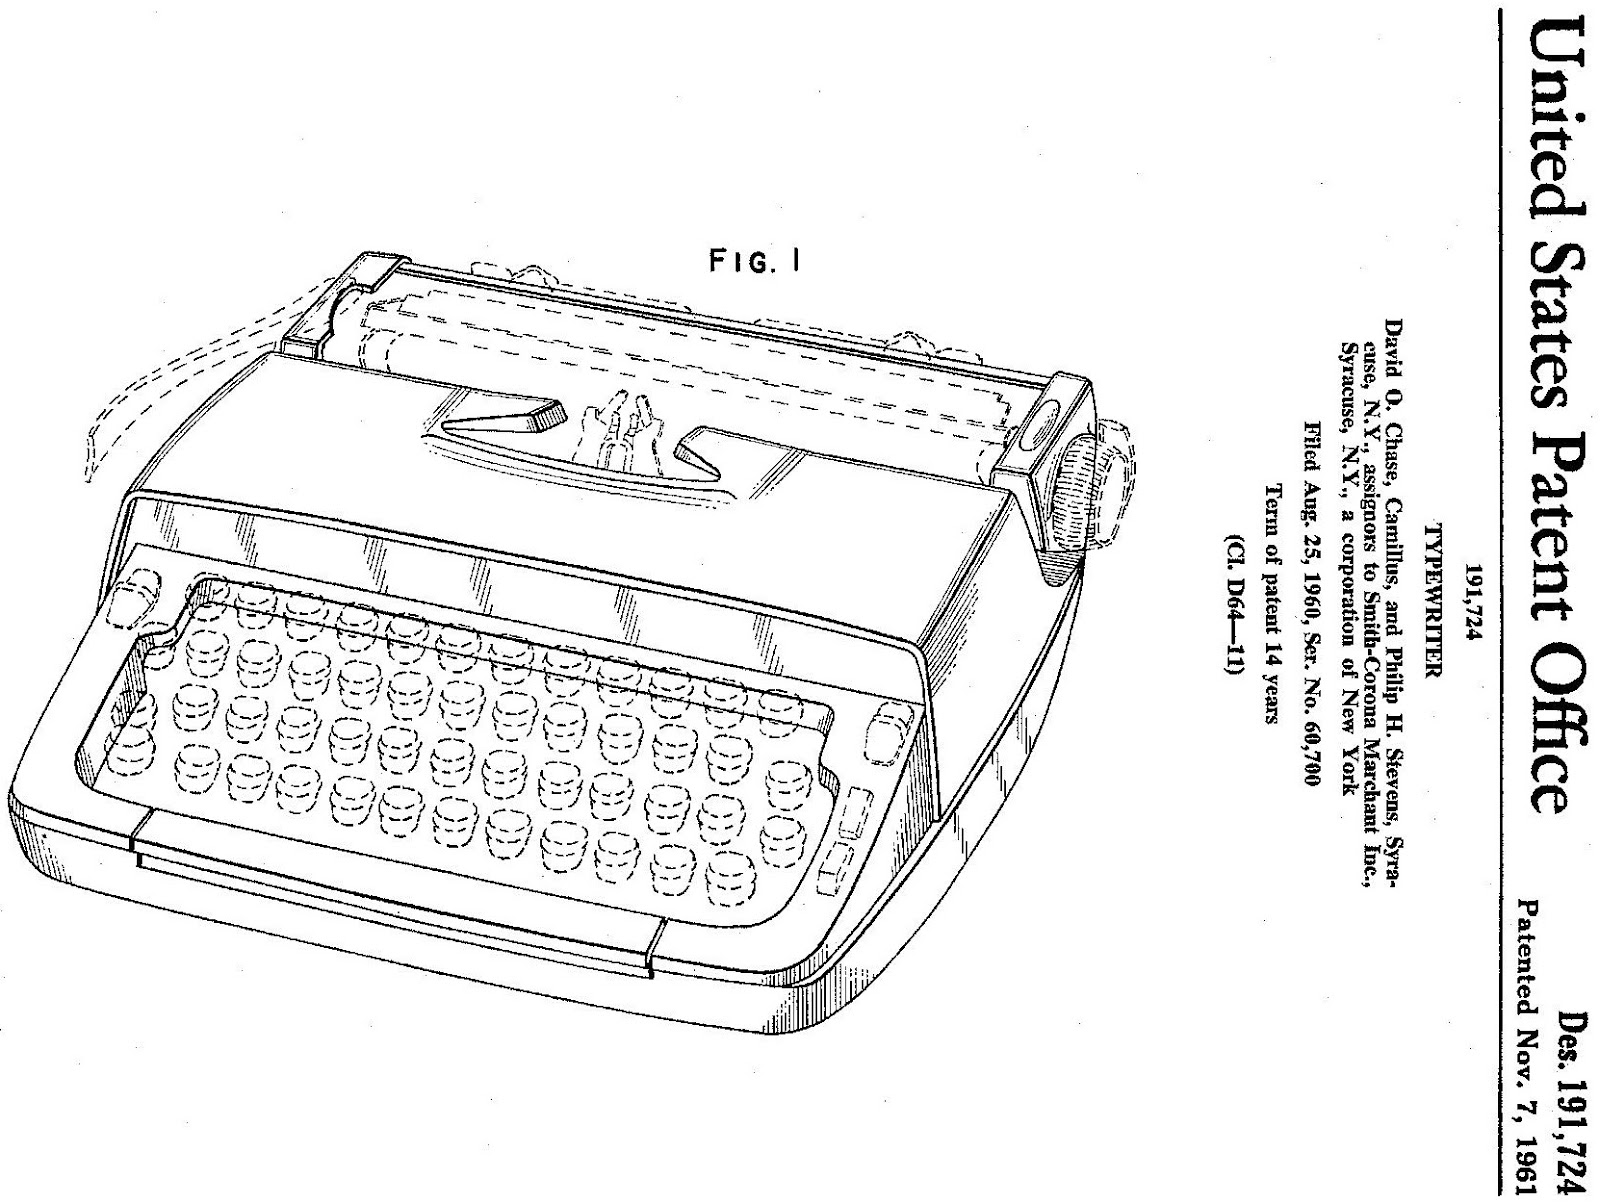 oz.Typewriter: Made in England (and the US): SCM Portable